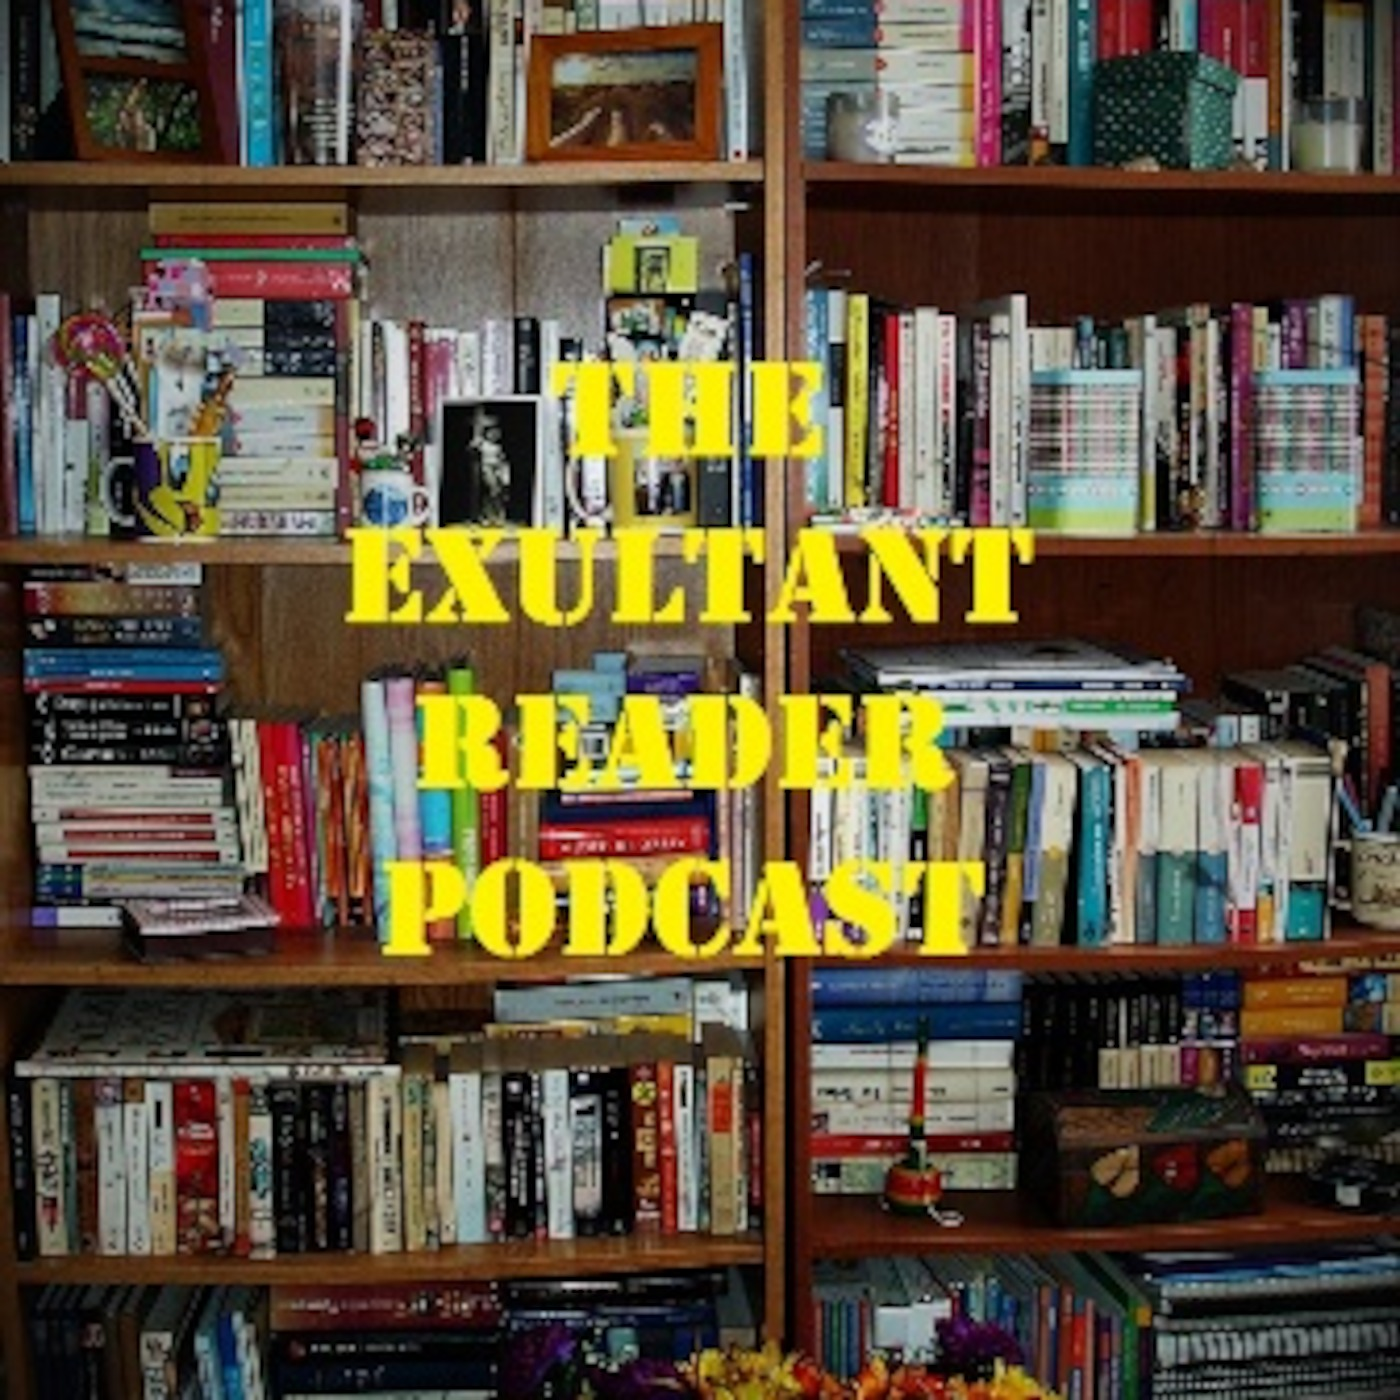 The Exultant Reader